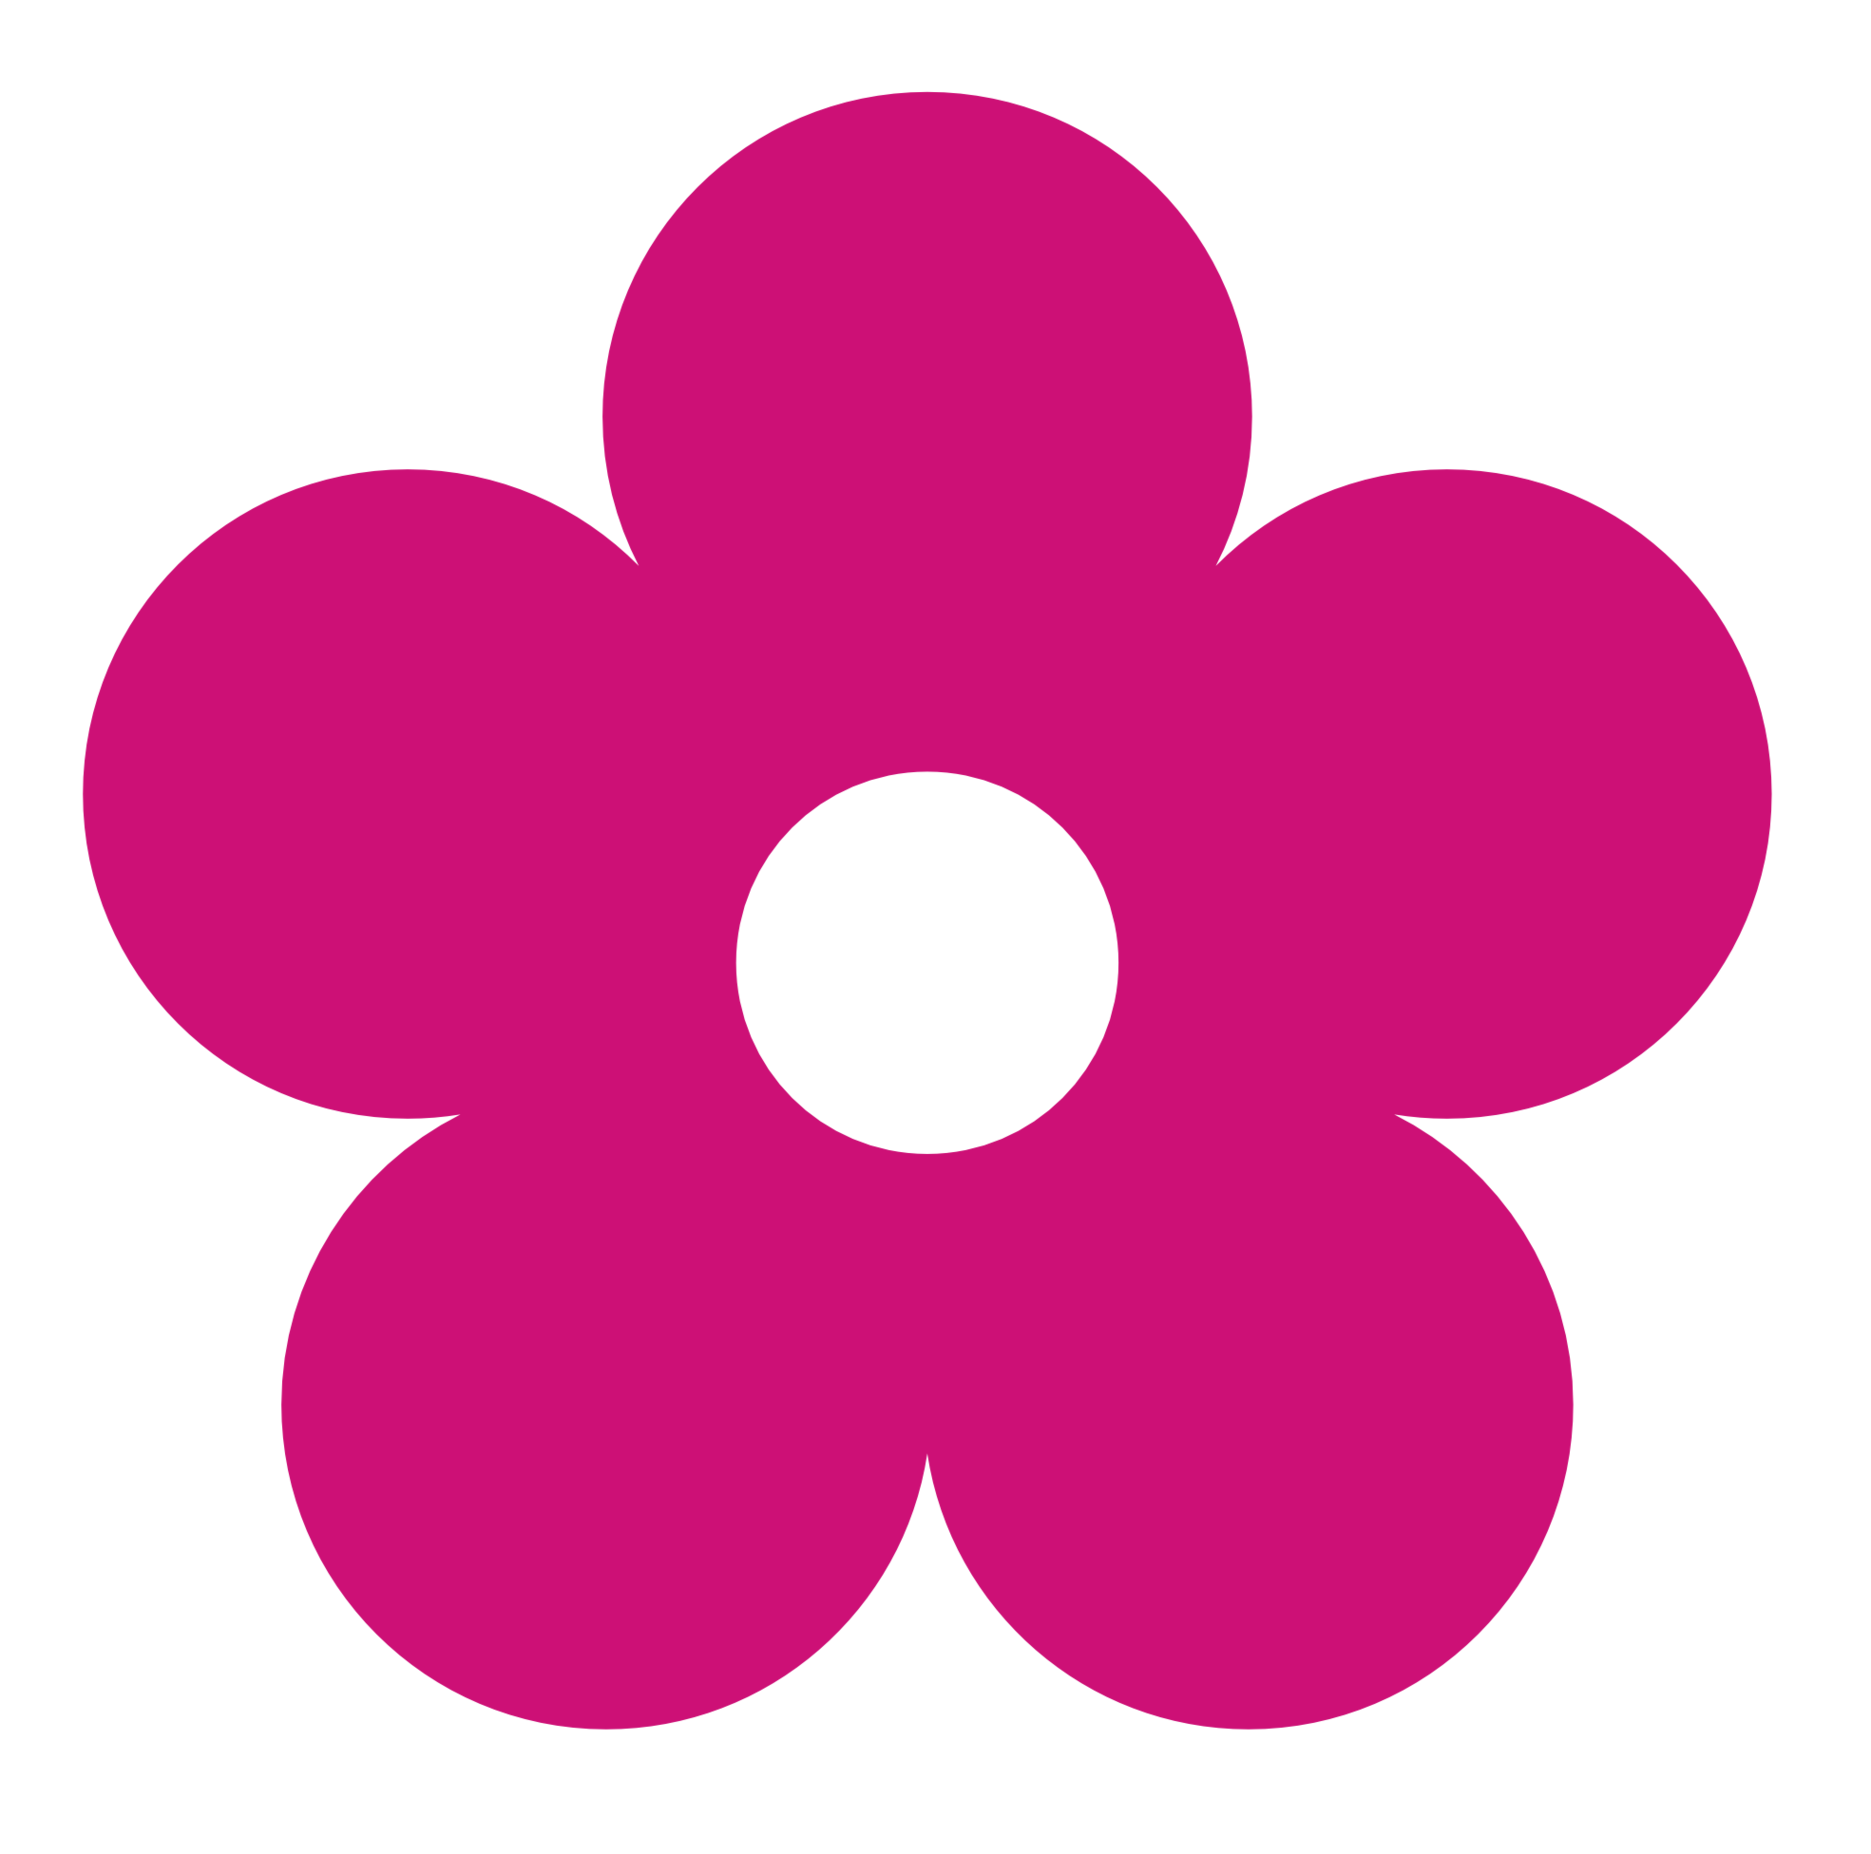 Google images flower clipart vector black and white stock Pink Flower Clipart & Pink Flower Clip Art Images - ClipartALL.com vector black and white stock